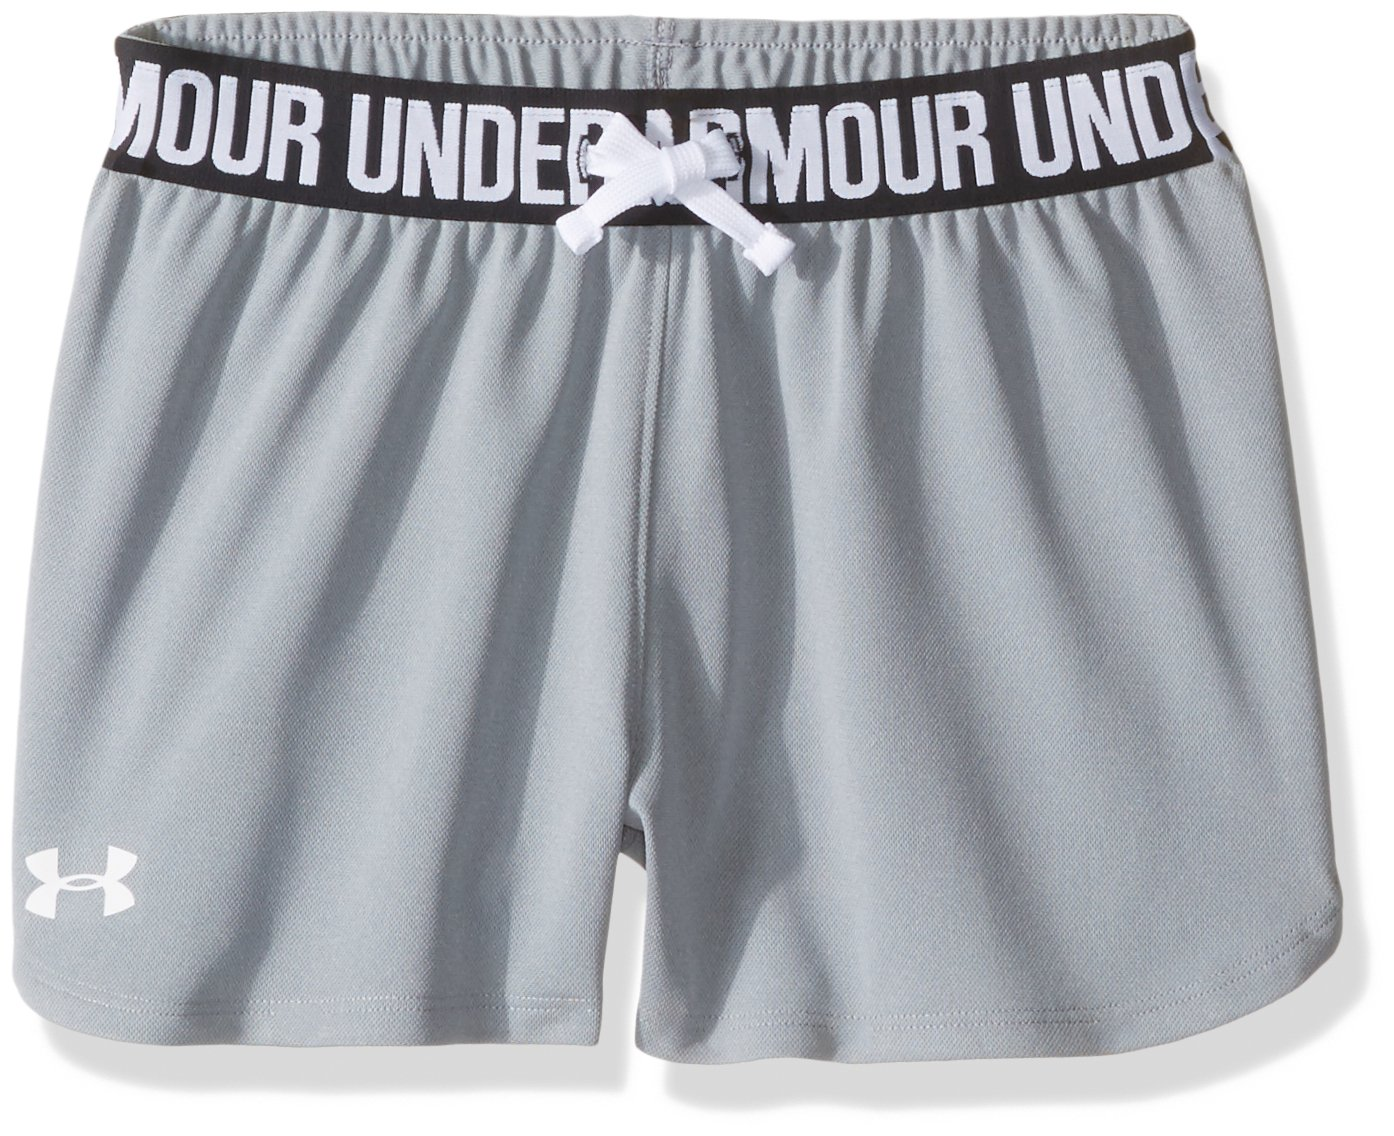 Under Armour Girls' Play Up Shorts, Steel /White, Youth Small by Under Armour